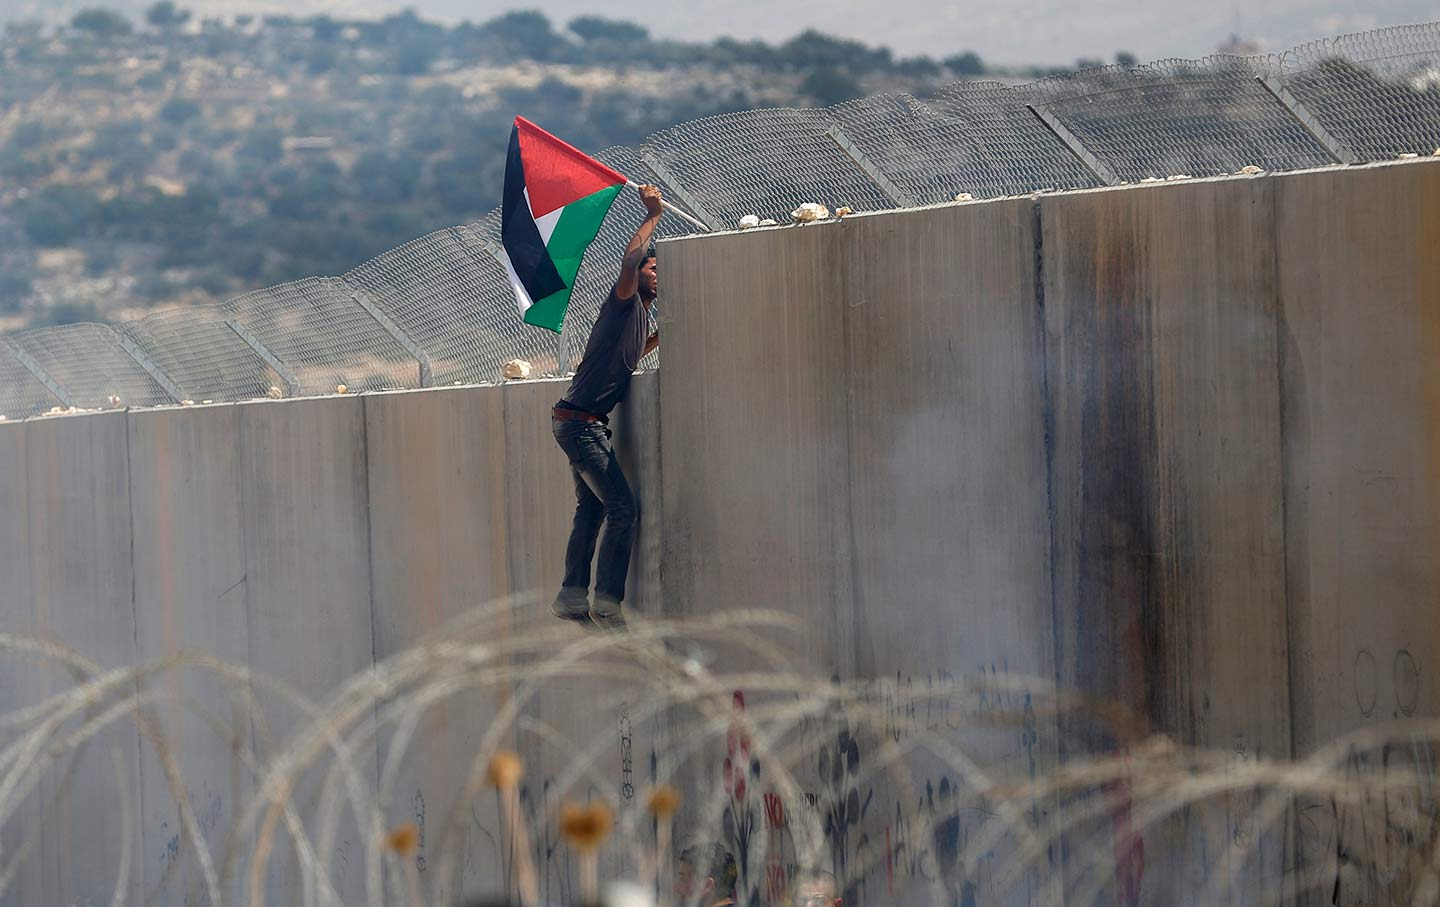 Palestinian Protestor Plants Flag